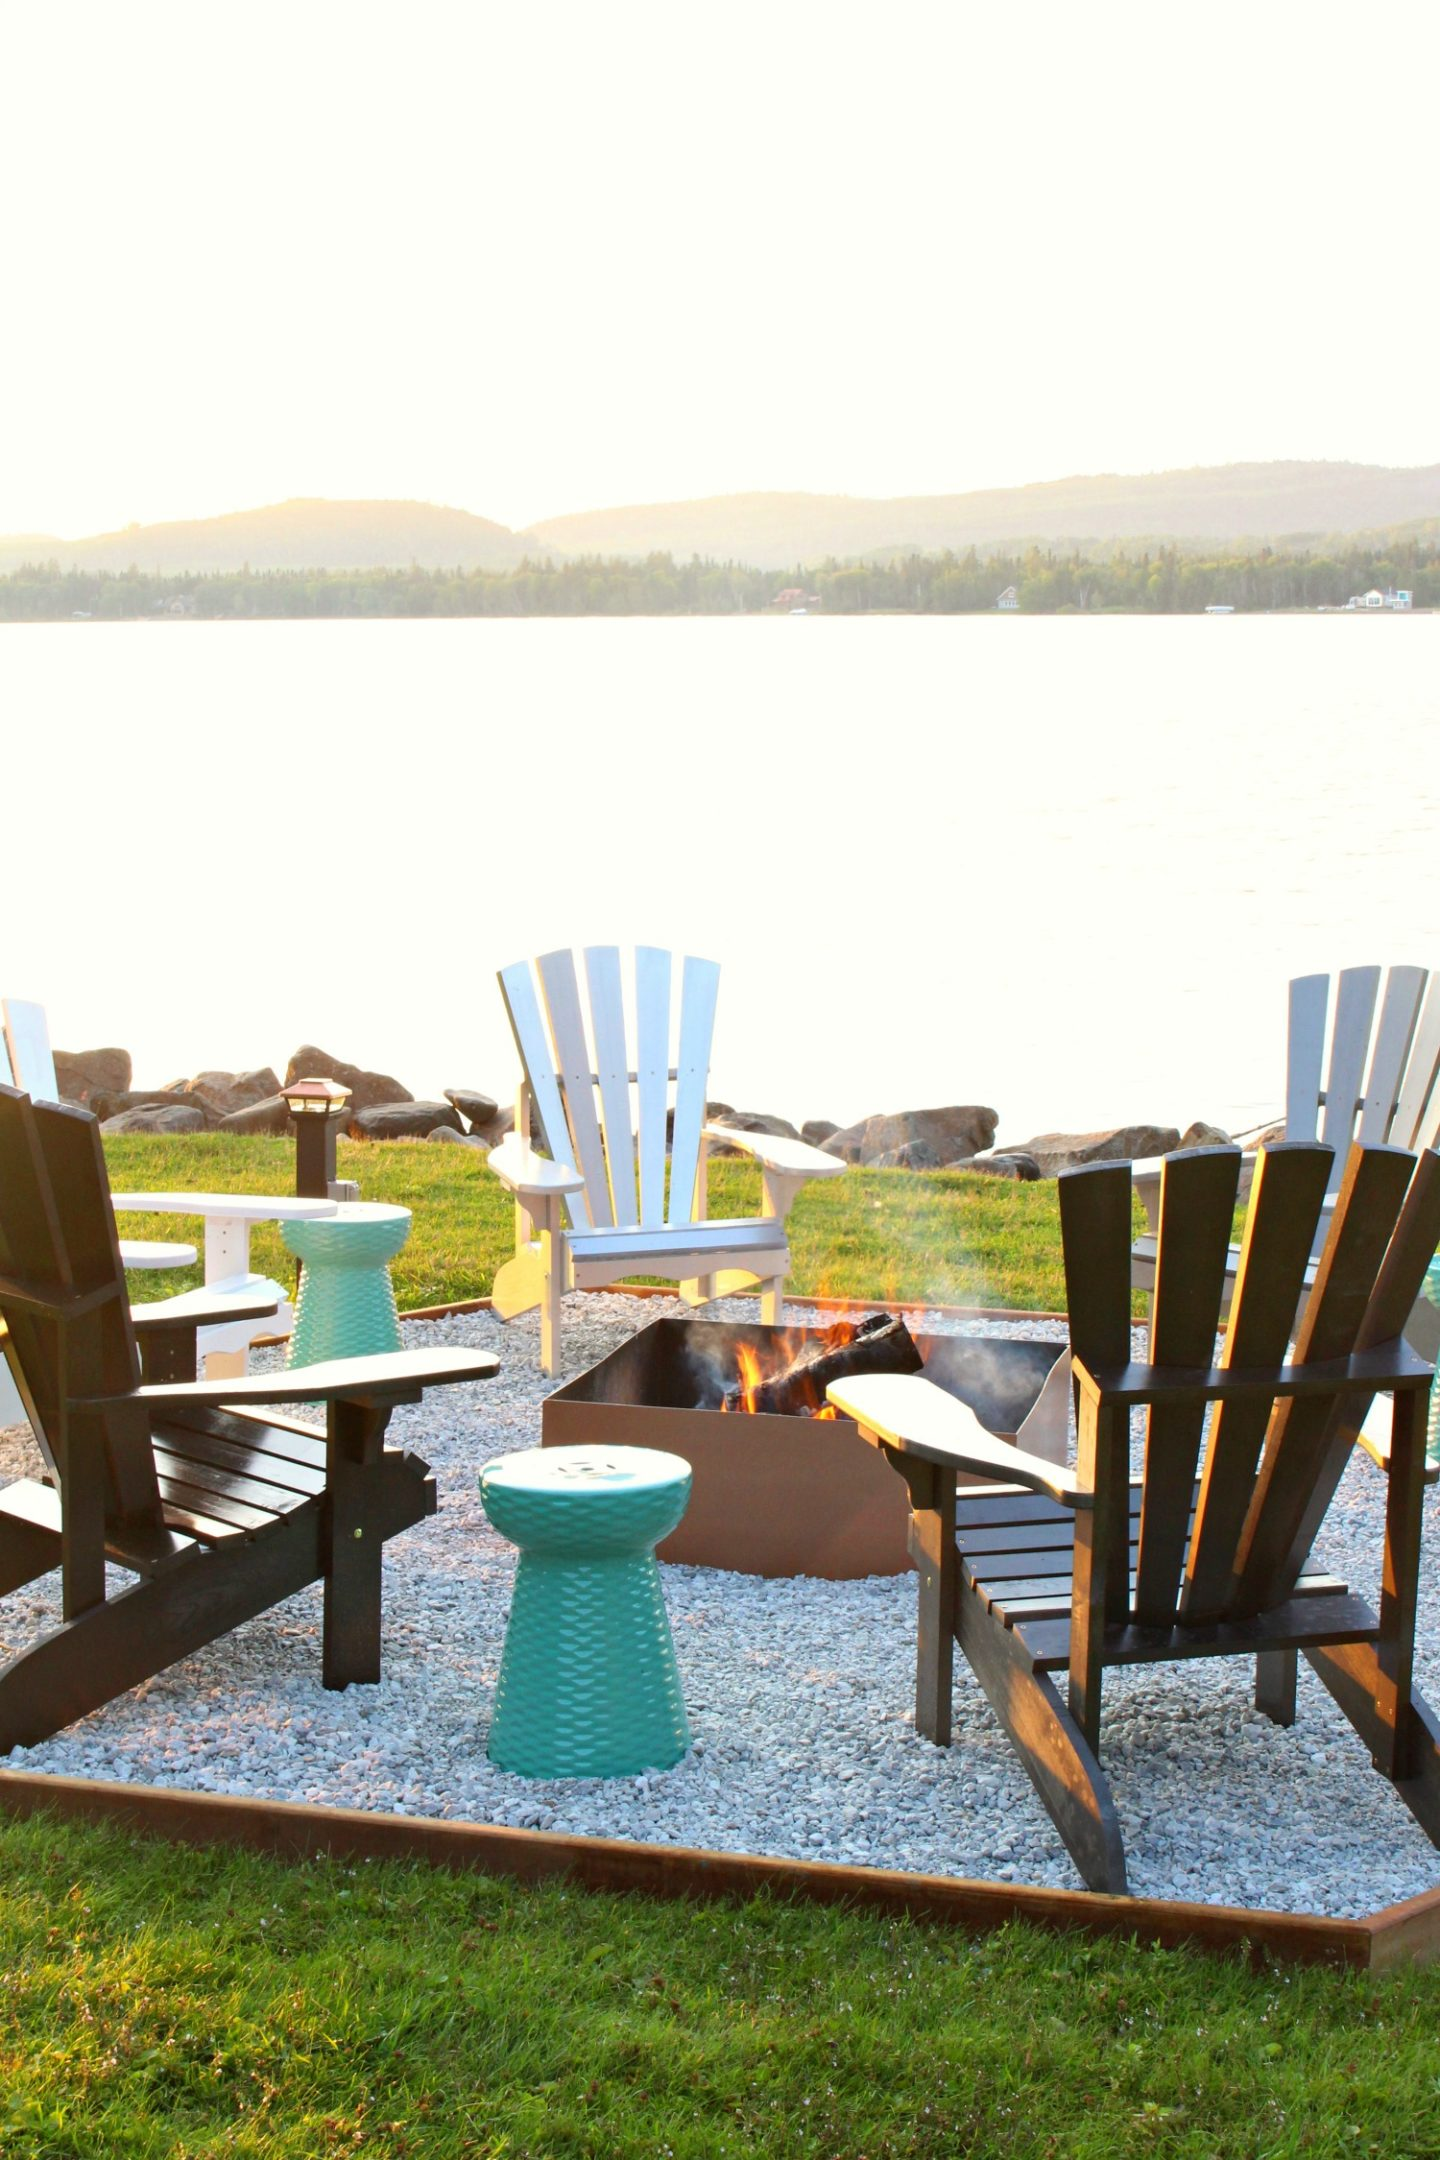 Lakefront Fire Pit Makeover + DIY Ombre Adirondack Chairs (Sponsored by The Home Depot Canada)